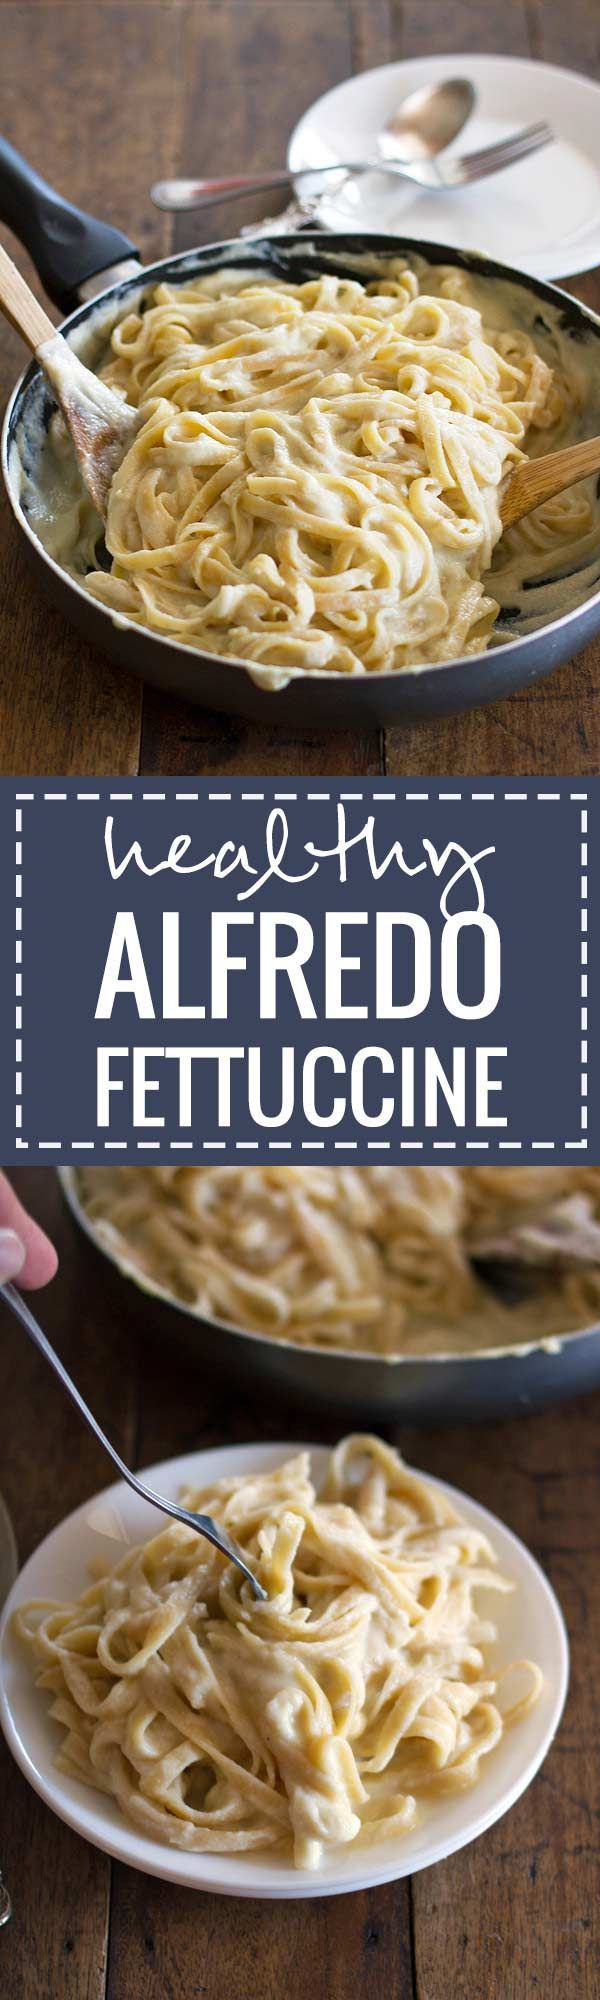 This healthy fettuccine alfredo is made with a creamy cauliflower sauce that tastes just like the real thing. Only 280 calories per serving!